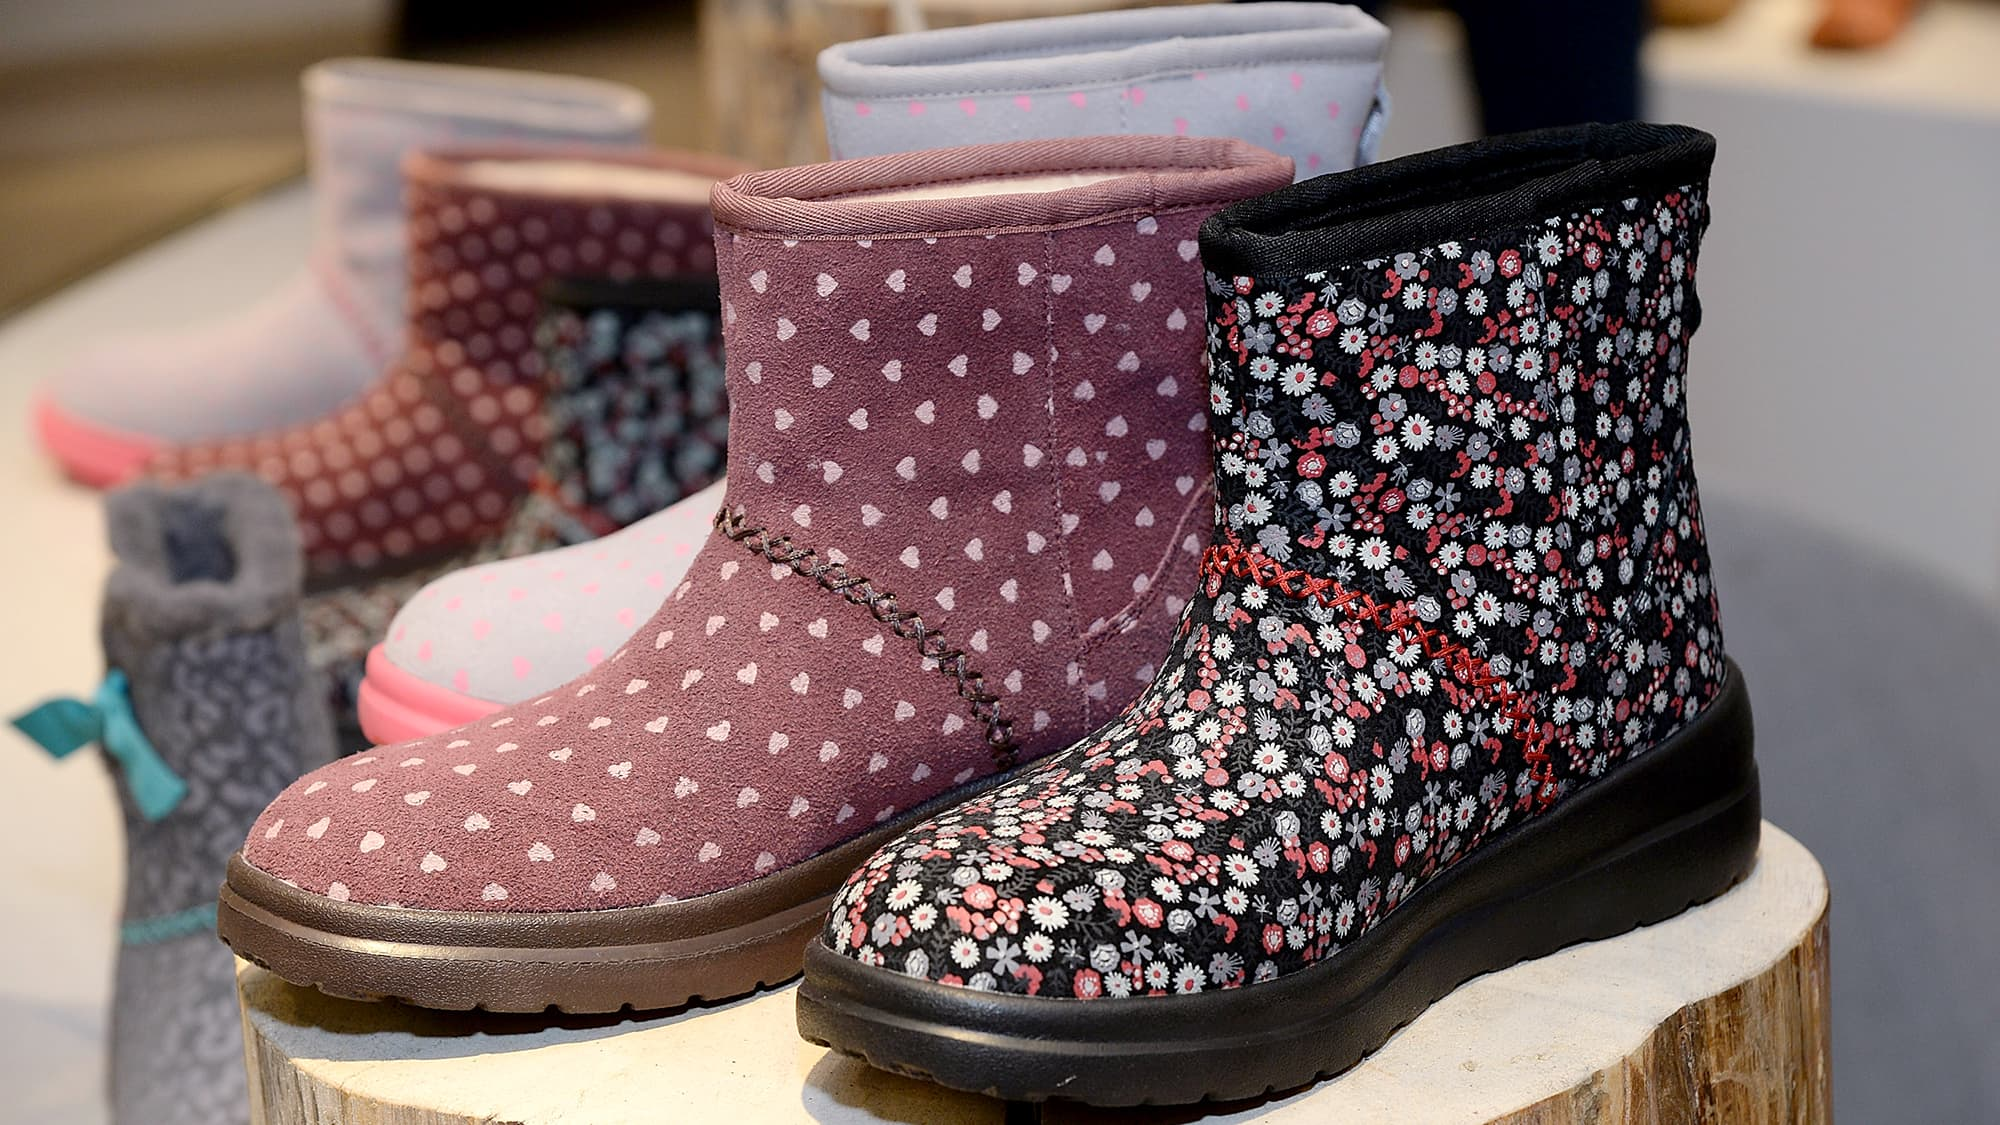 b437b475774 Buy UGGs-maker Deckers on weather, says Telsey